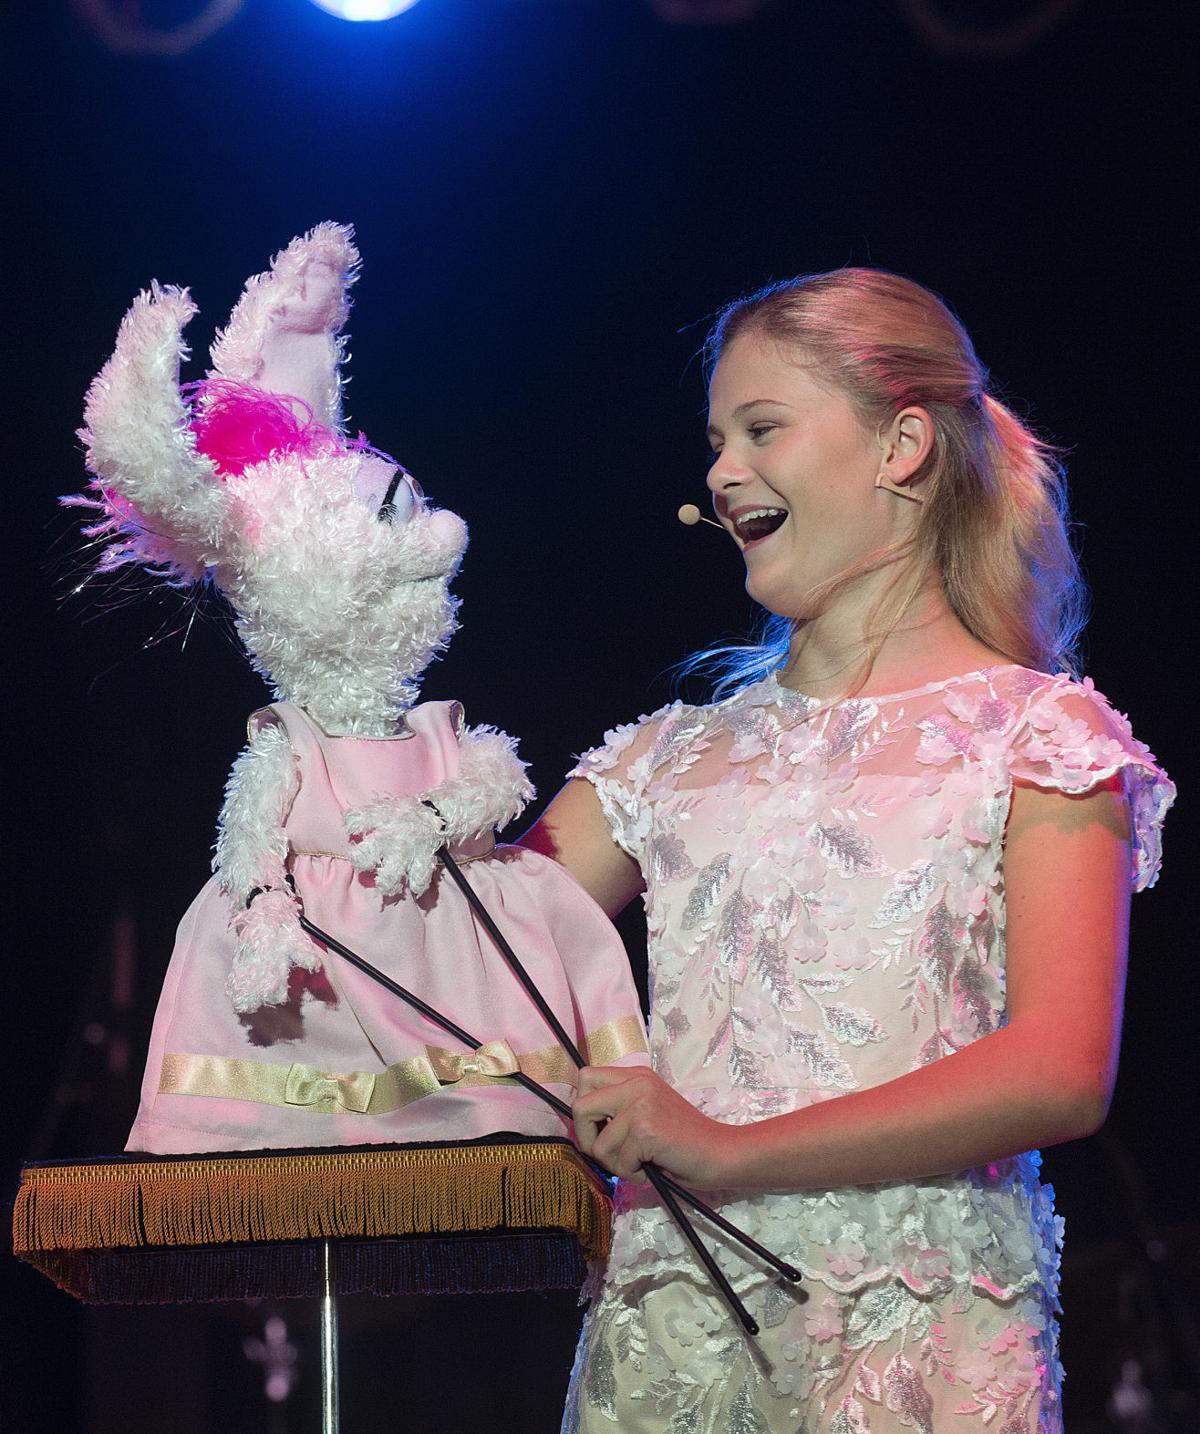 Darci Lynne brings singing, yodeling and ventriloquism to